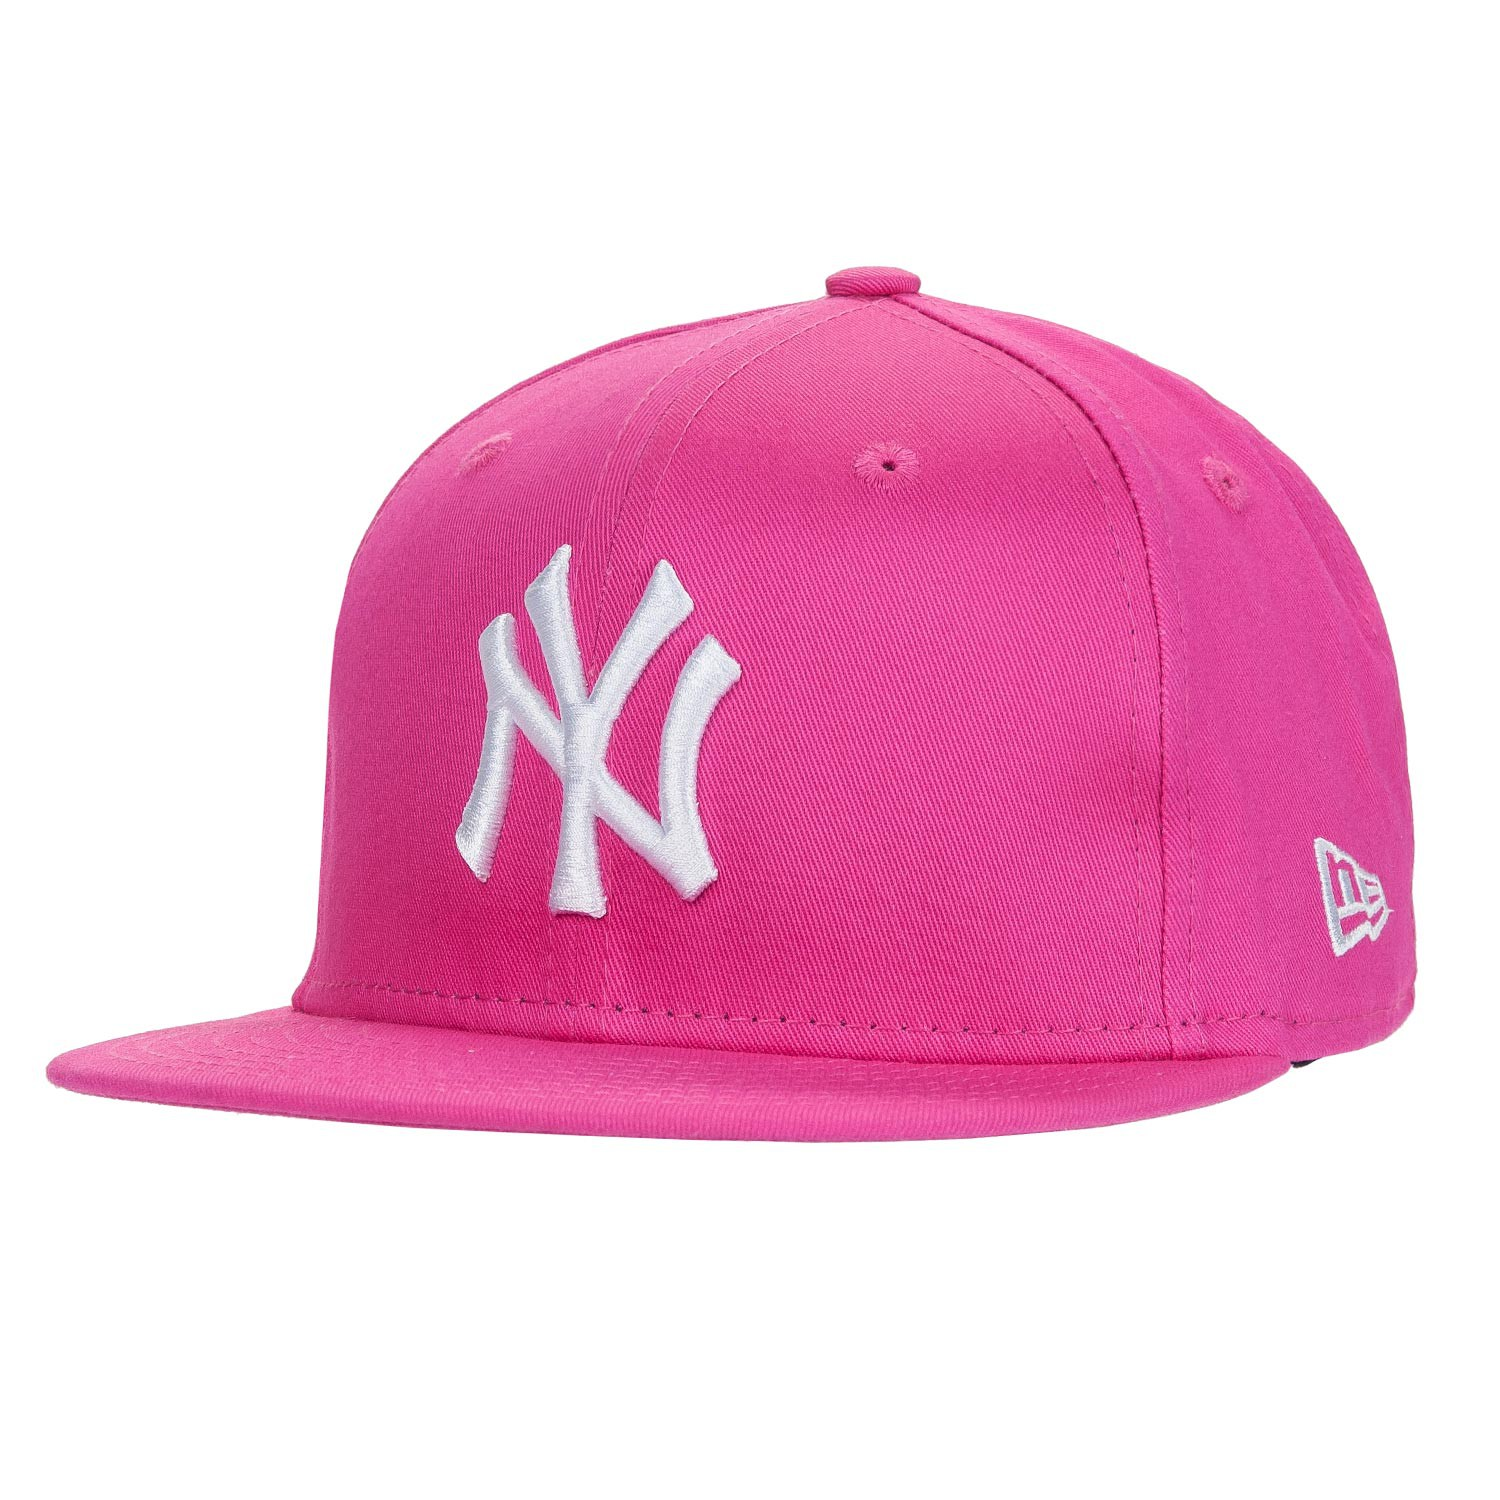 Kšiltovka New Era New York Yankees 9Fifty Mlb Lea. pink/white